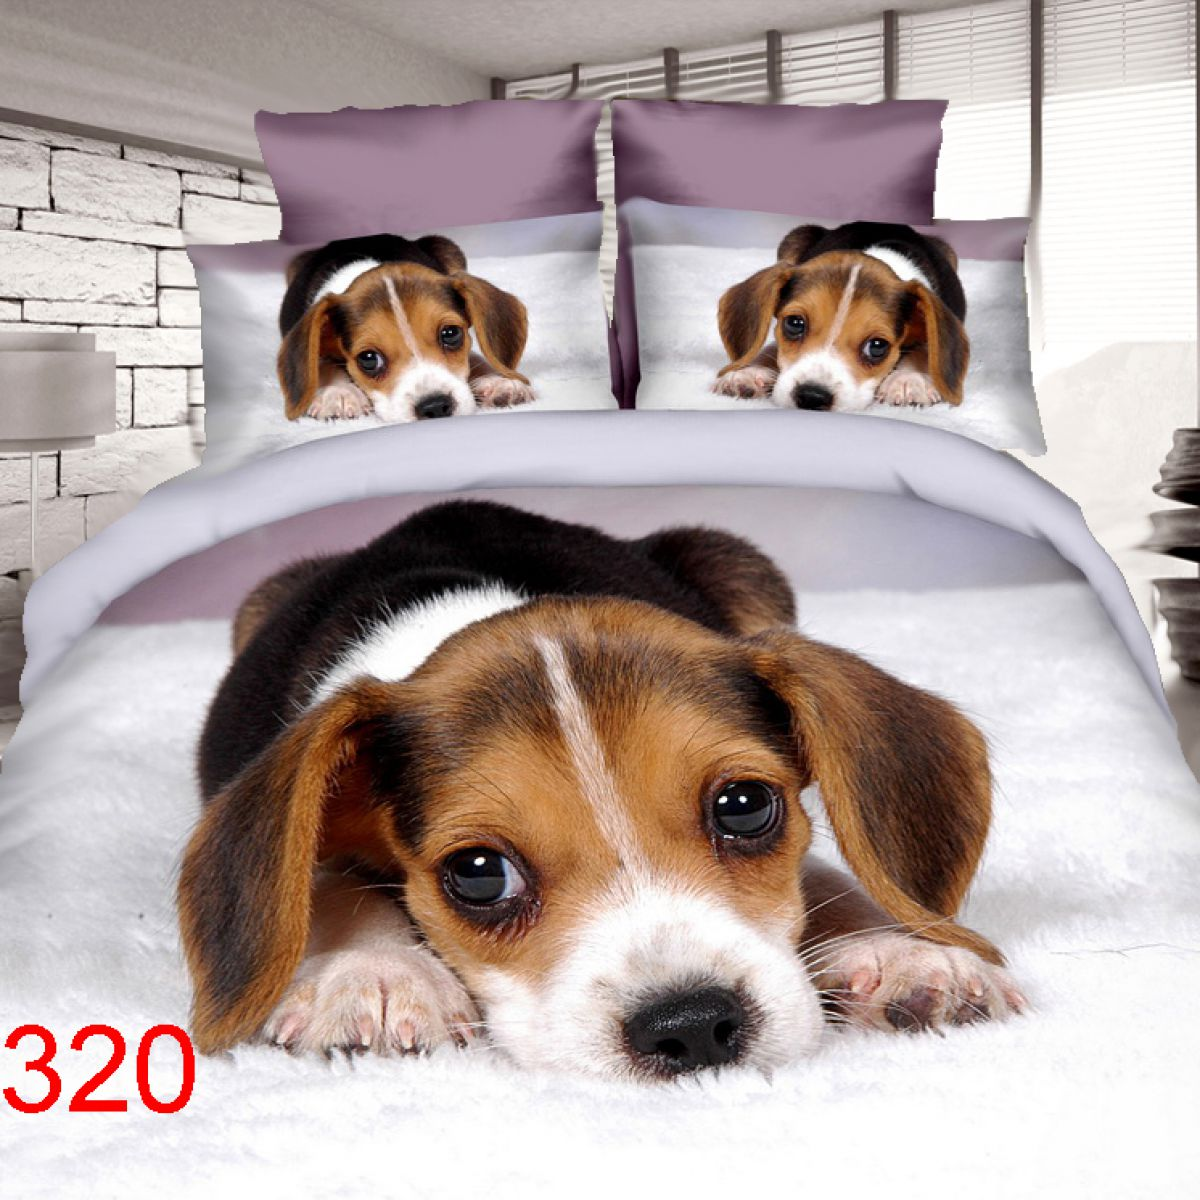 3D Beddings - Antonio - AML-320 - 160x200 cm - 4 pcs